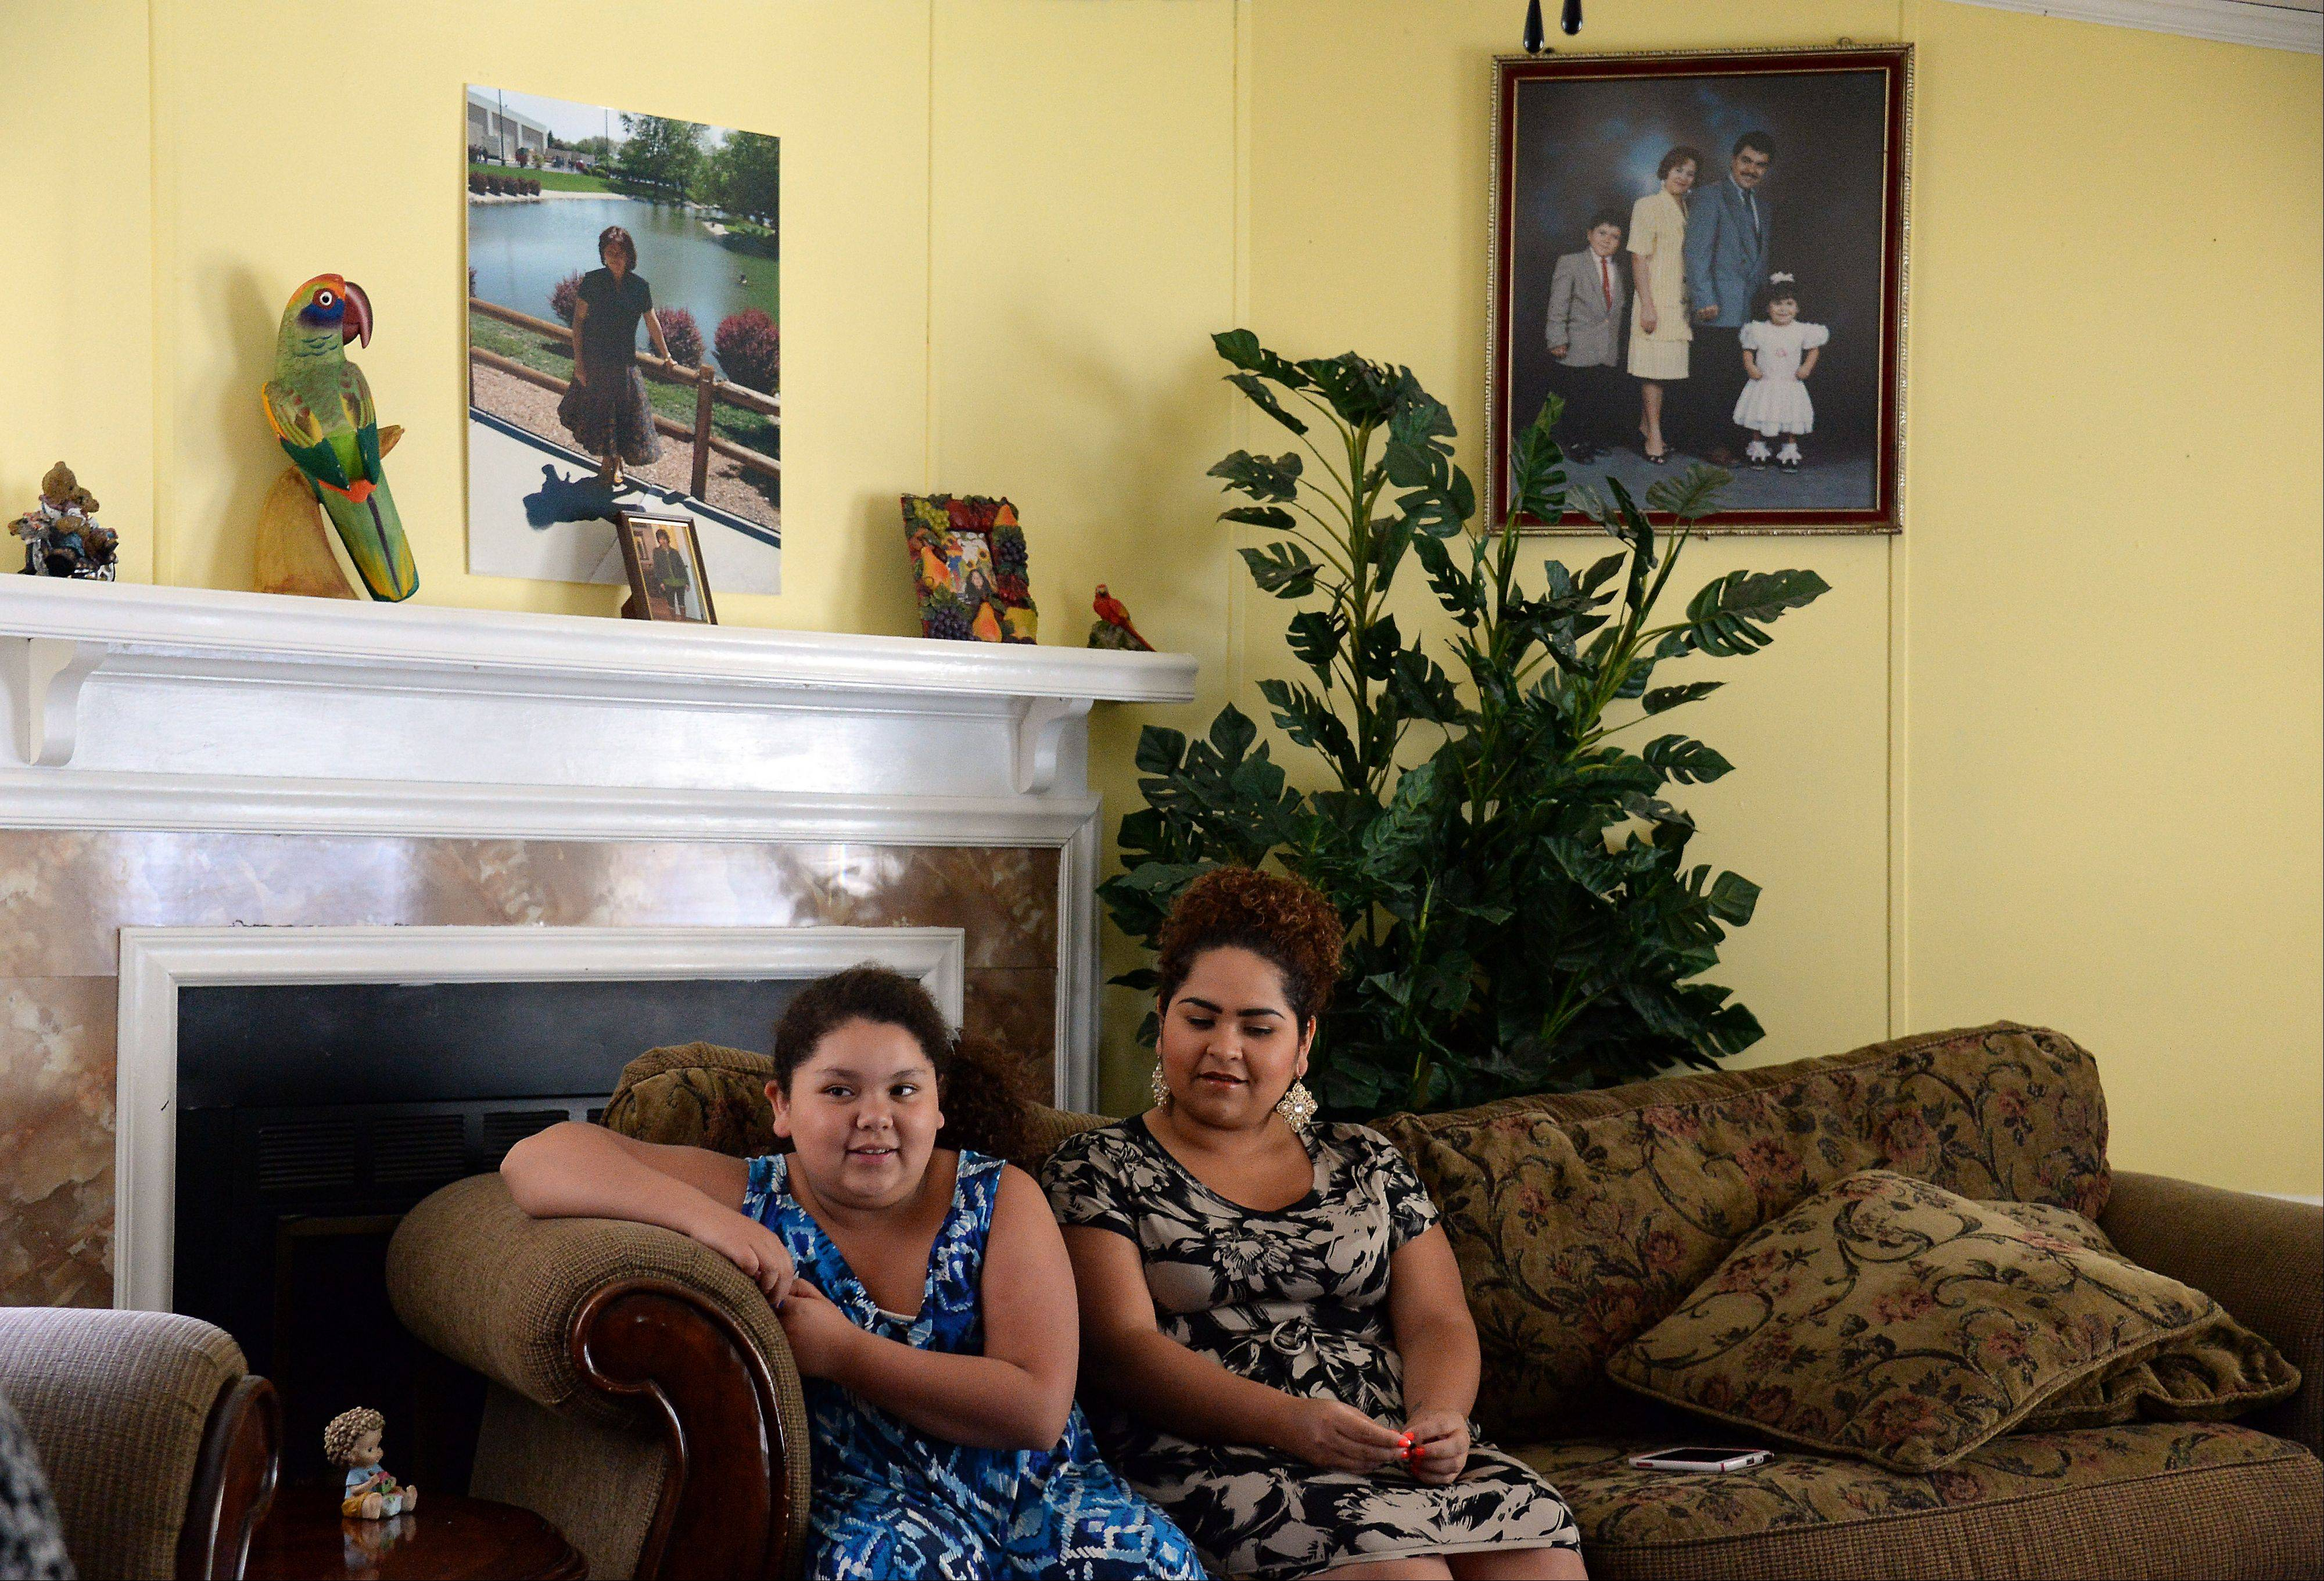 Greta Ramirez, left, and her sister Karen were able to stay together in their home after a family tragedy thanks in large part to the help and support they received from friends and acquaintances.